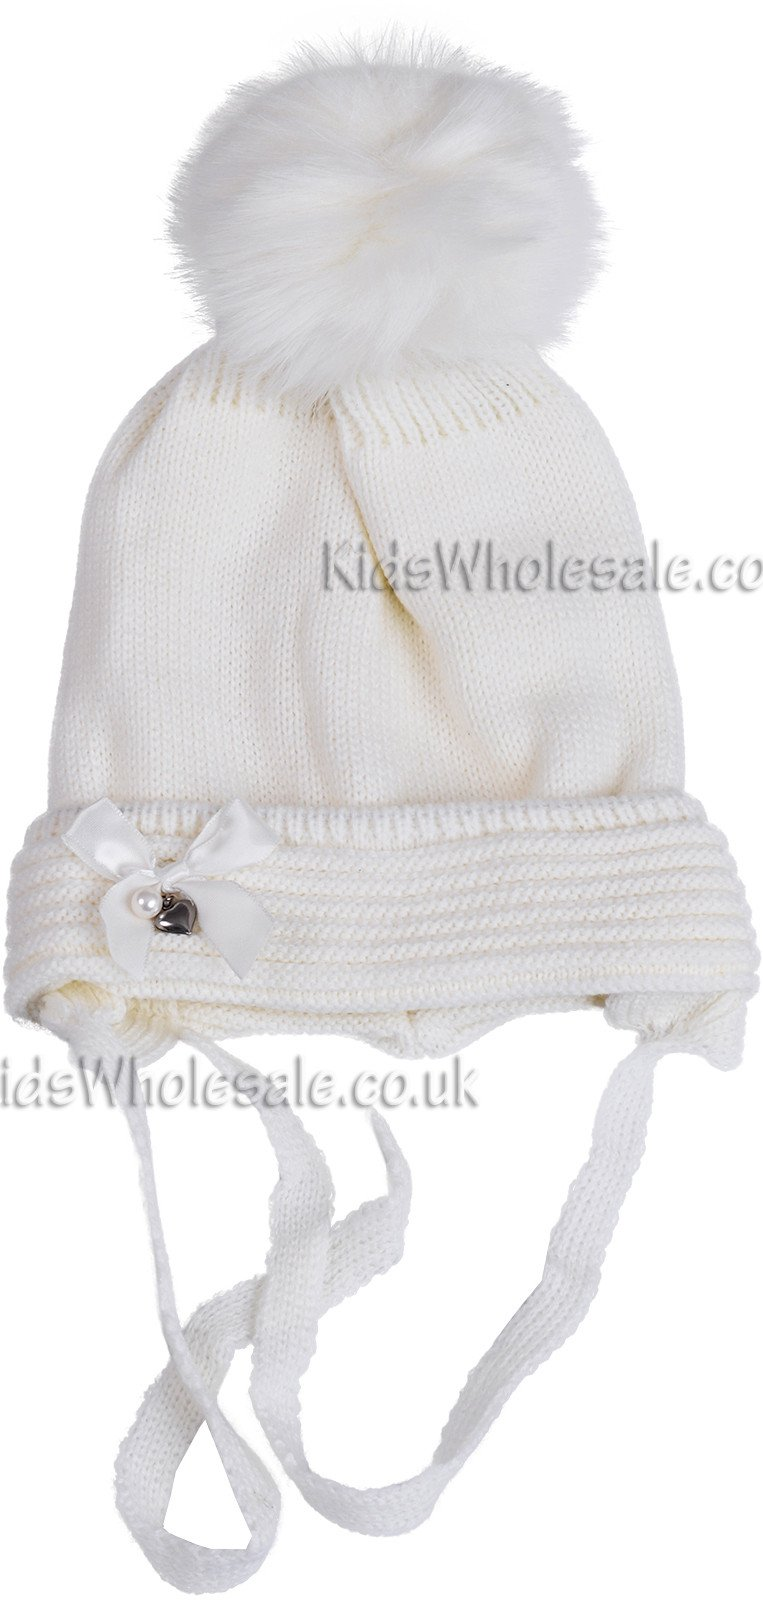 Girls Fur Pom Hat With Satin Bow (1-2 Years)(DF4202) - Kidswholesale.co.uk